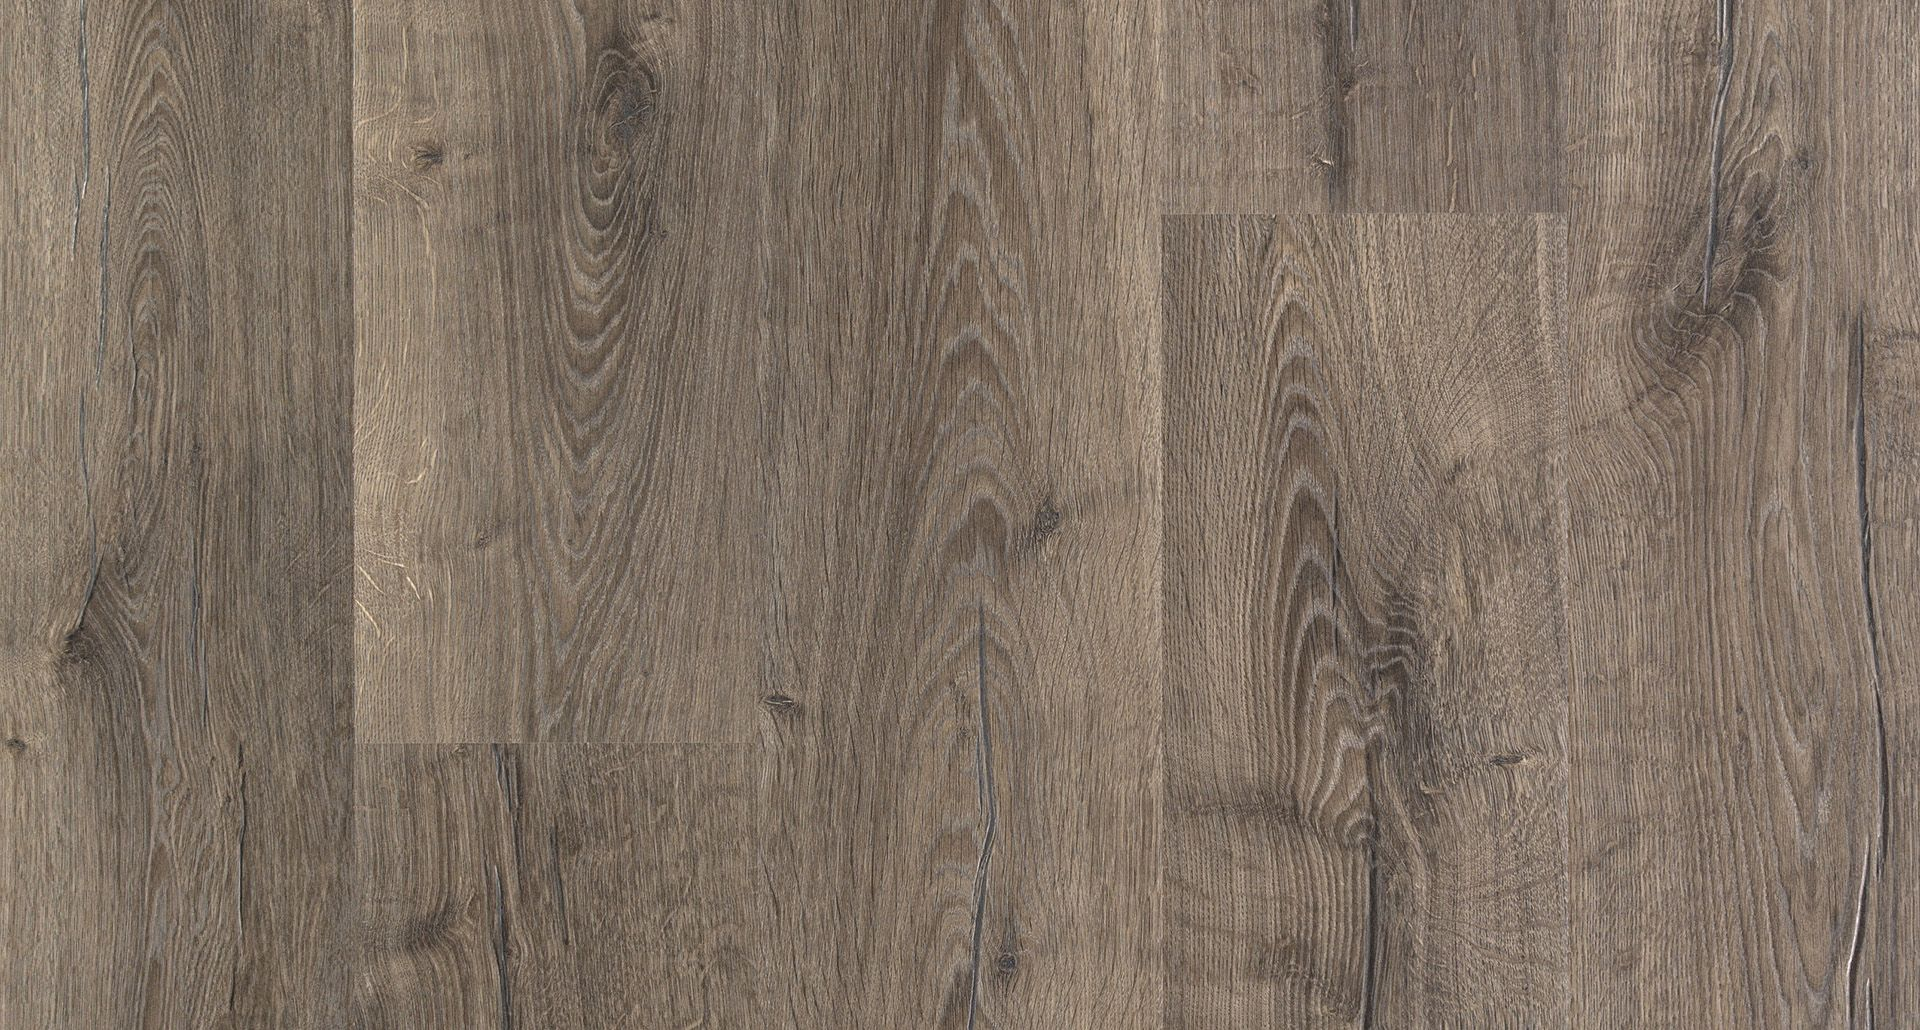 Vintage Pewter Oak Natural Laminate Floor With Wear And Spill Protection Grey Oak Waterproof Laminate Flooring Pergo Laminate Flooring Wood Laminate Flooring